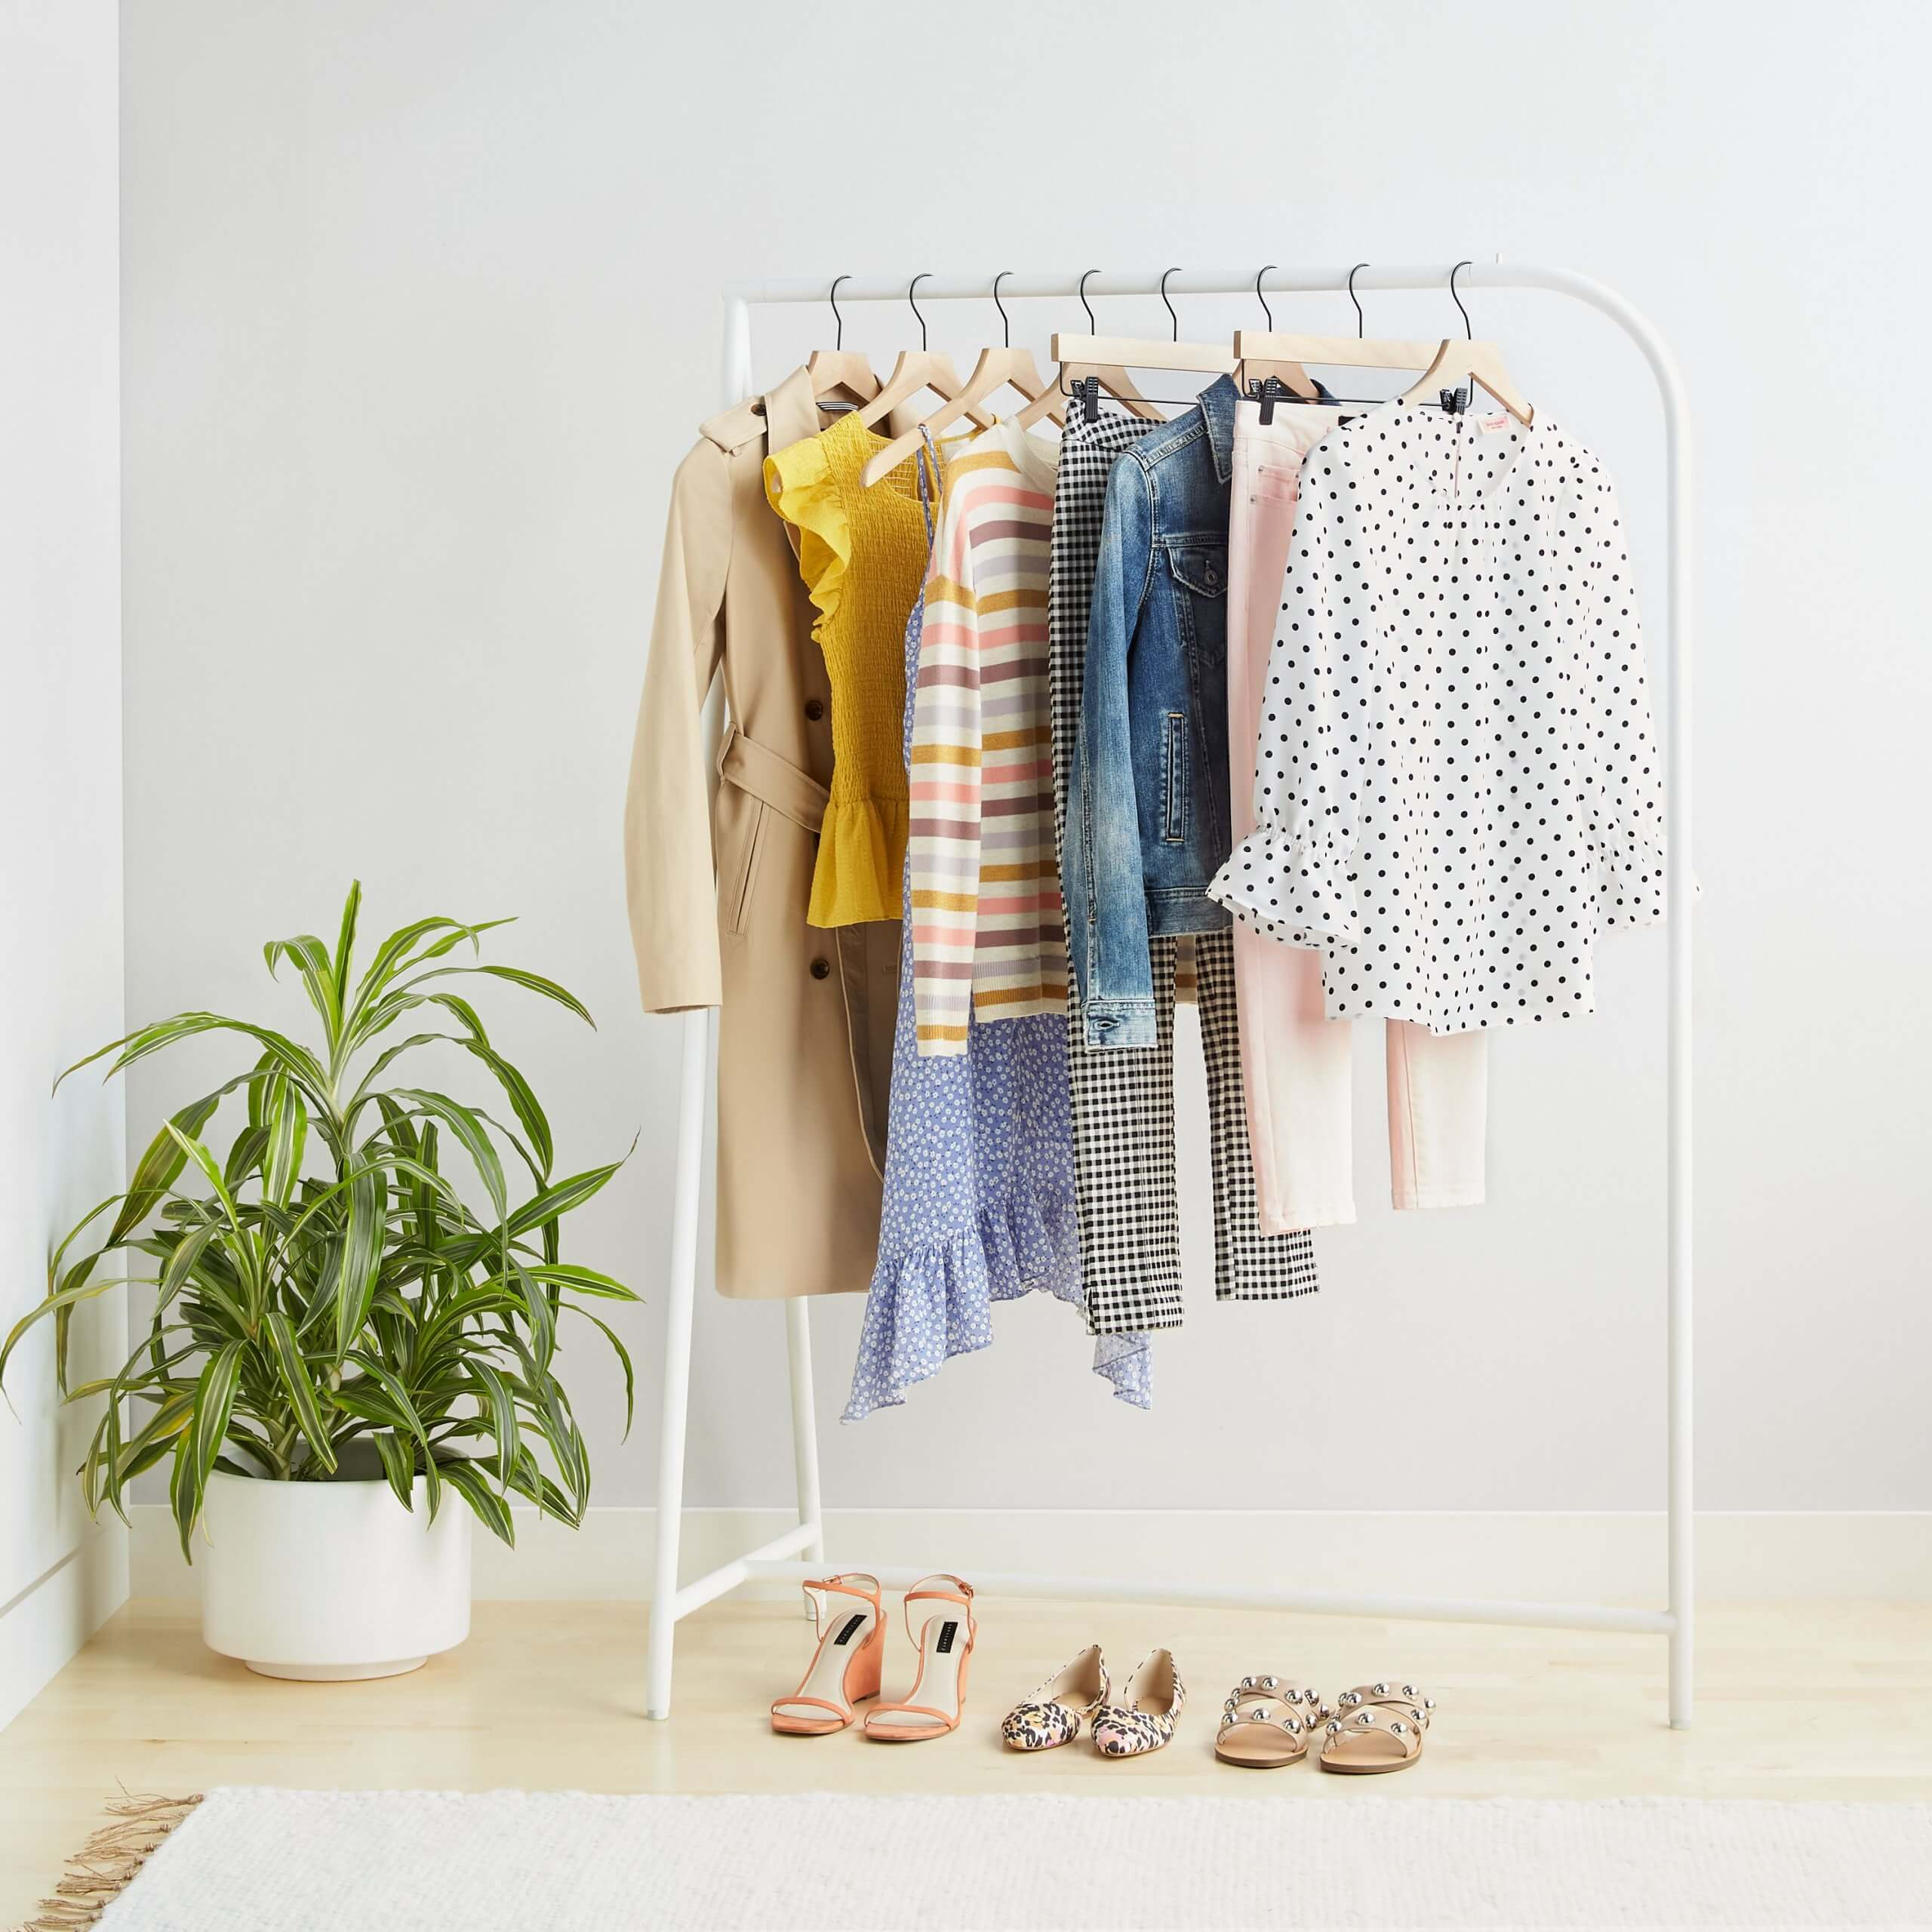 Stitch Fix Women's rack image featuring white polka dot blouse, pink jeans, blue denim jacket, multi-colored striped pullover, yellow blouse and tan trench hanging on white rack with tan slide sandals, animal-print flats and coral wedges on the ground.